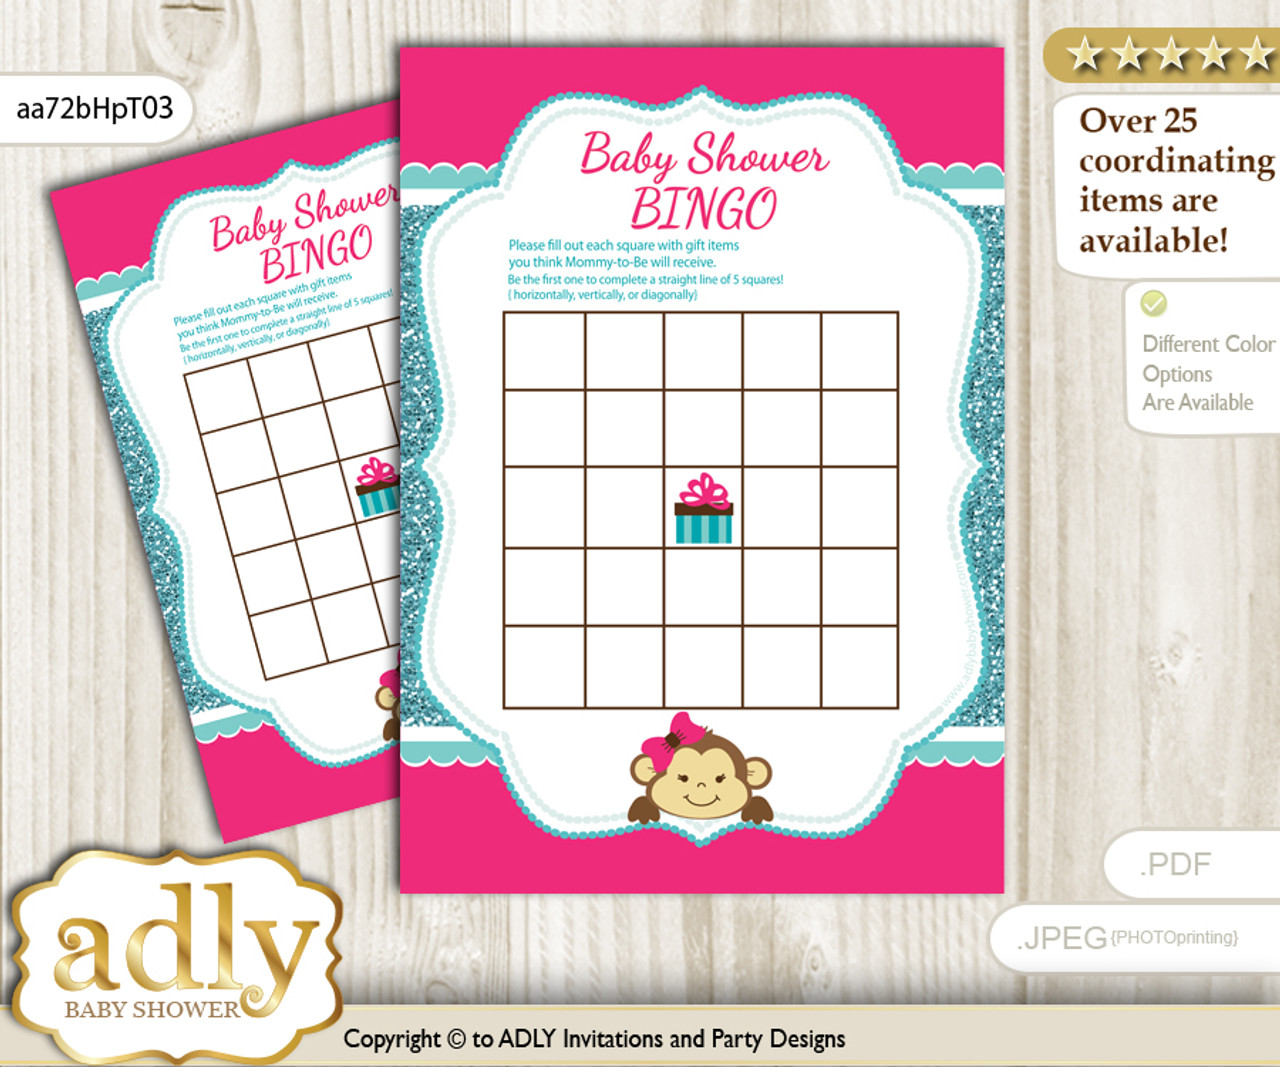 photograph regarding Baby Shower Bingo Cards Printable referred to as Printable Very hot Red Monkey Bingo Recreation Printable Card for Youngster Lady Shower Do-it-yourself gray, Scorching Red, Glitter